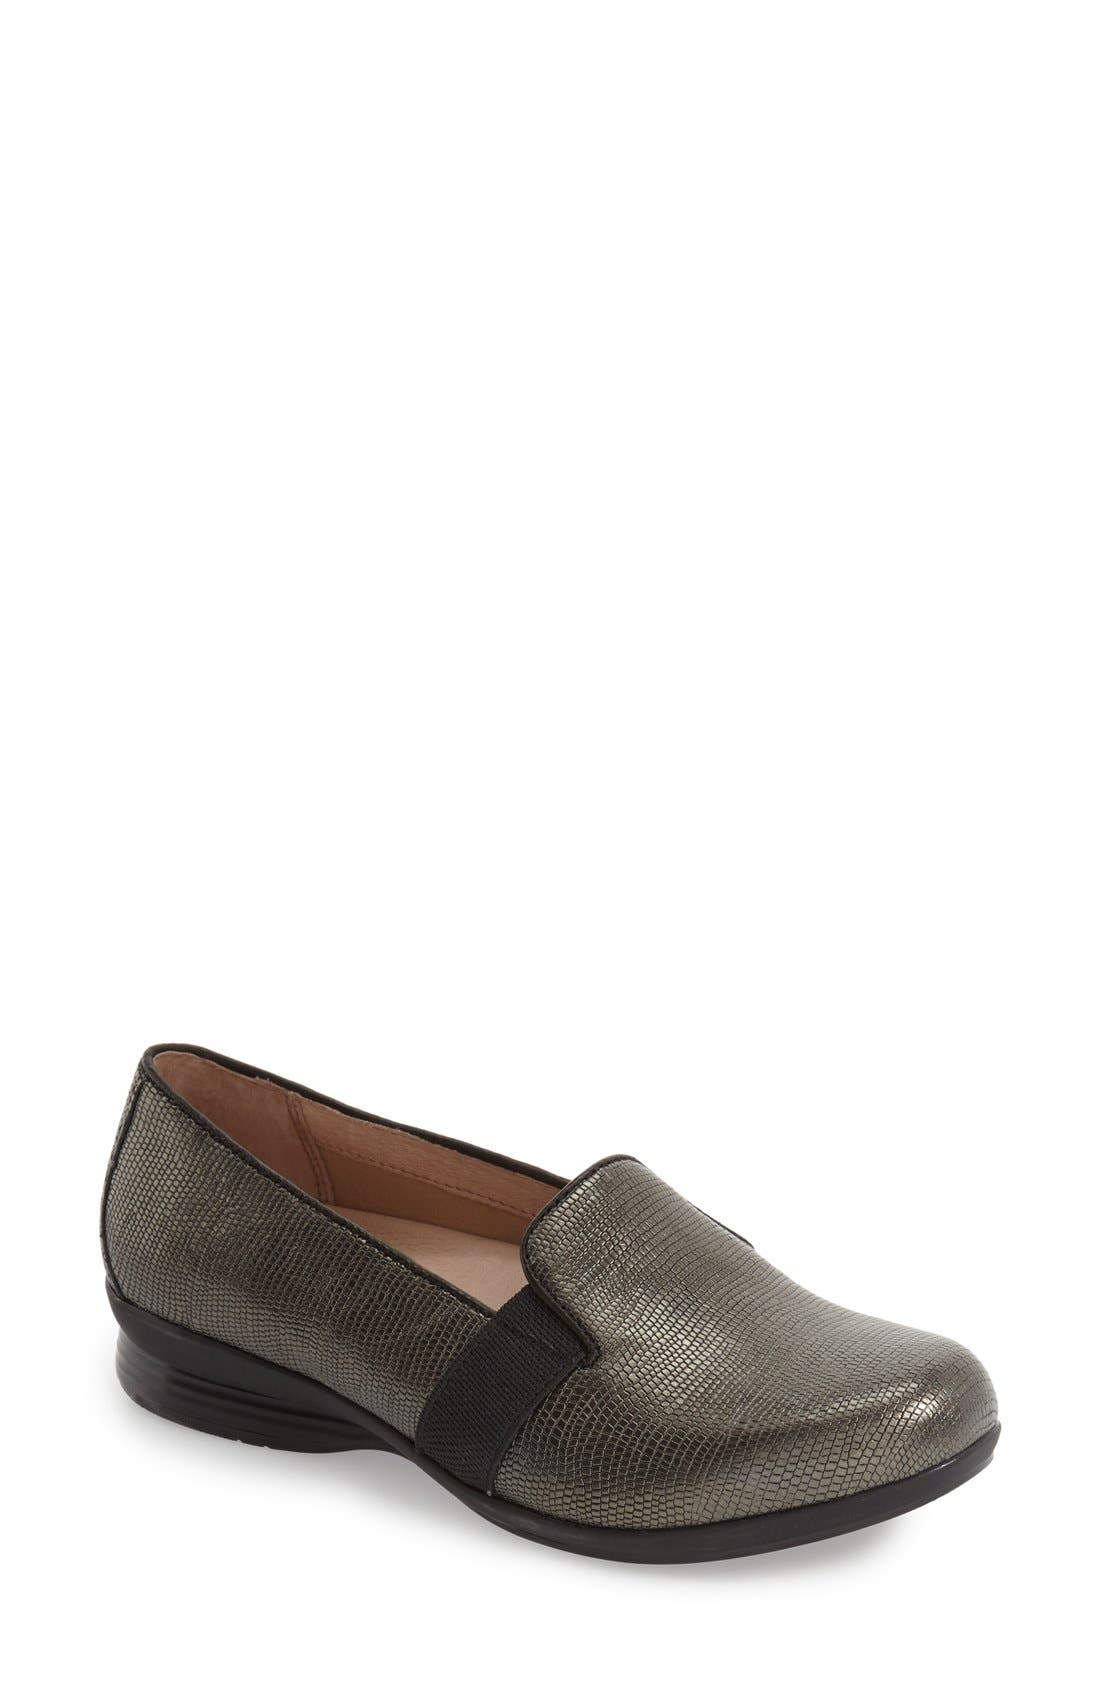 'Addy' Loafer,                         Main,                         color, 040